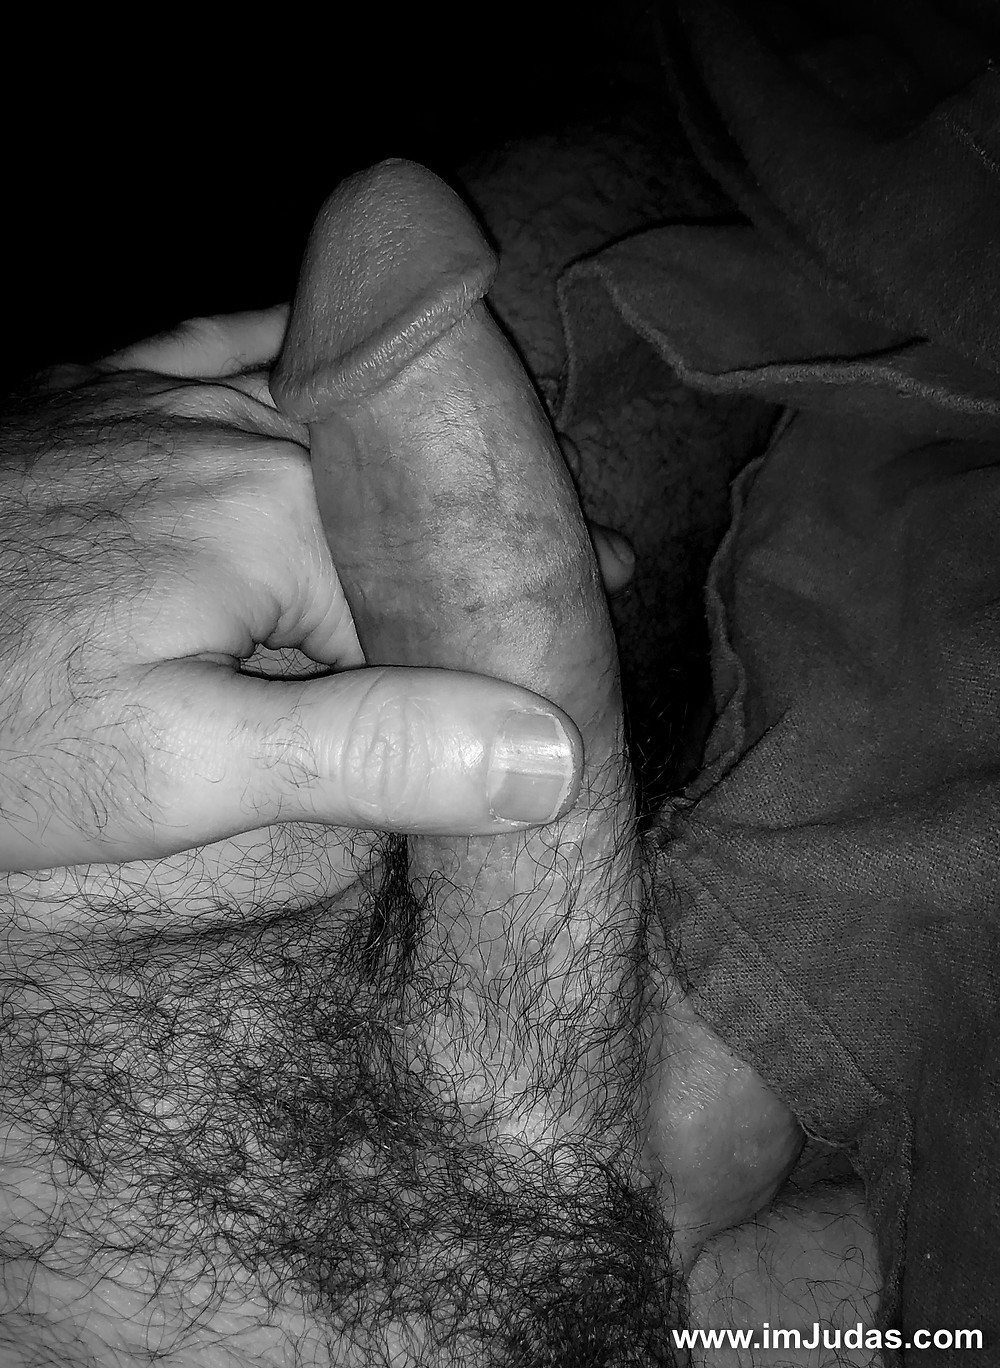 My morning wood wakes me up before my alarm clock.